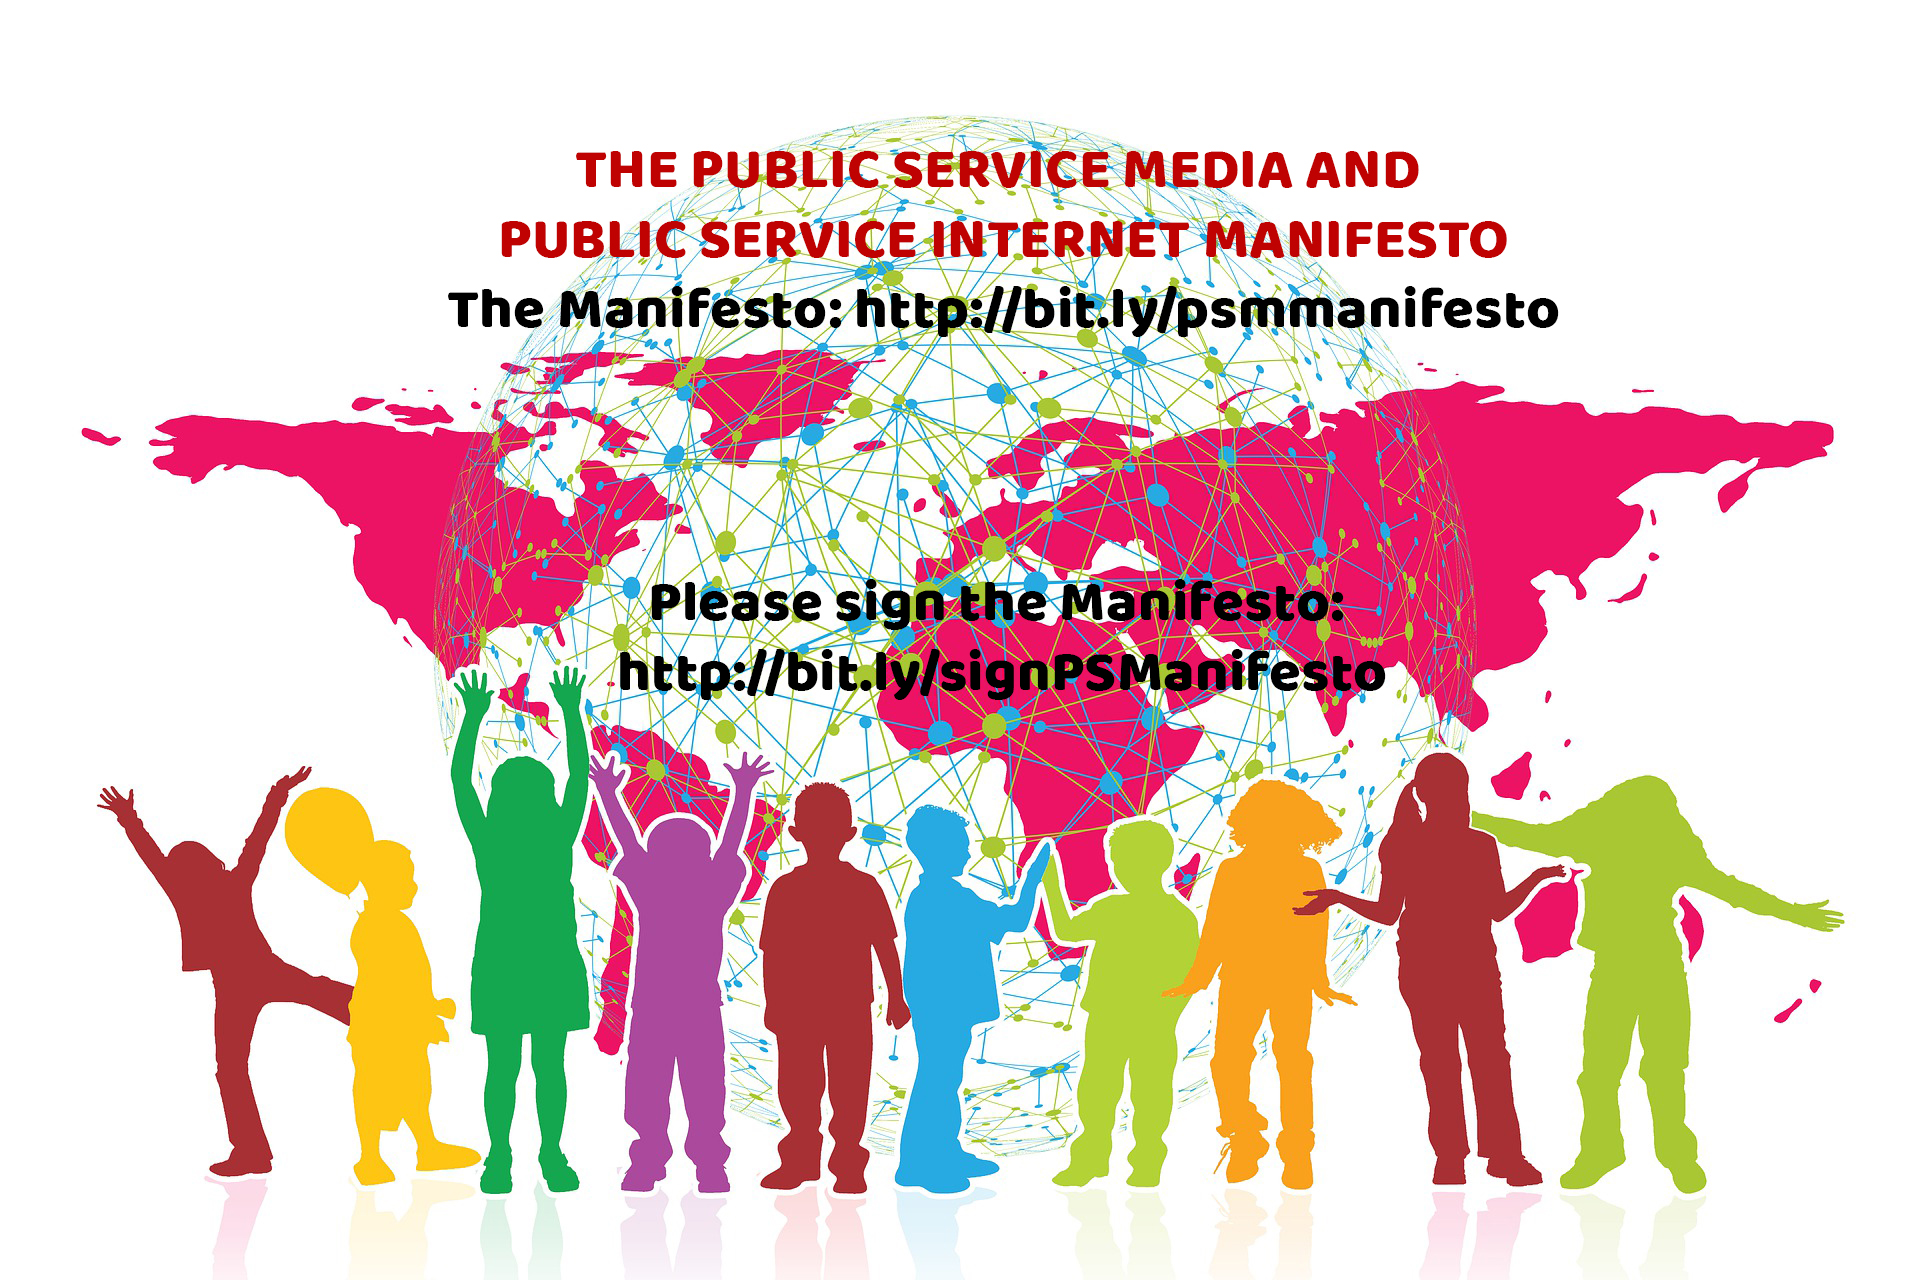 Occupy the Internet: 200 Media Experts Publish an Alarming Wake Up Call and Demand a Public Service Internet